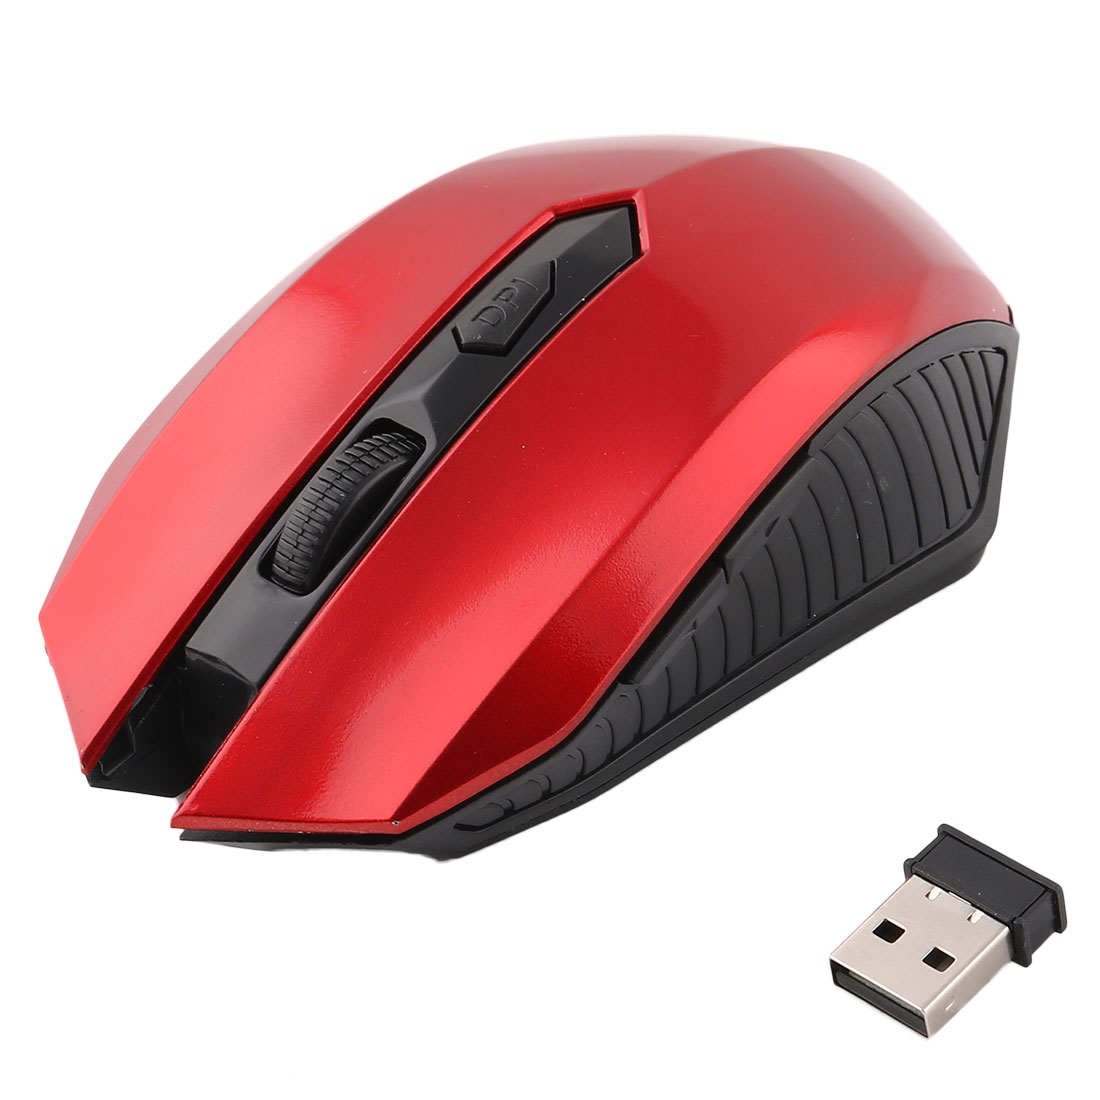 Unique Bargains Wireless 6-Button 2000 DPI Optical Mouse Mice Red w USB Receiver for Laptop